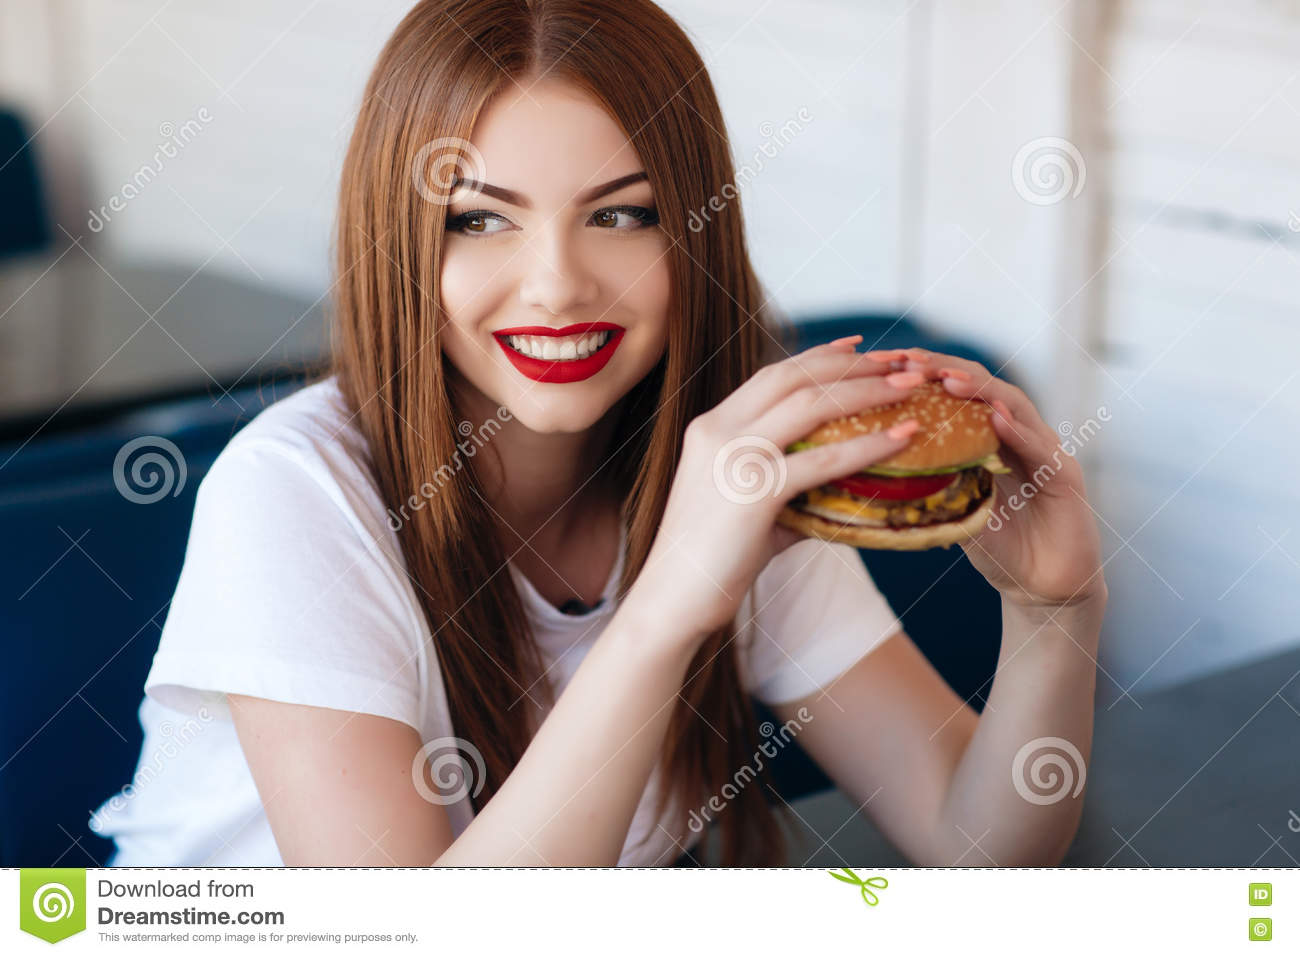 Red Lipstick Brown Hair Blue Eyes: Lady With A Hamburger For A Table In A Cafe Stock Photo